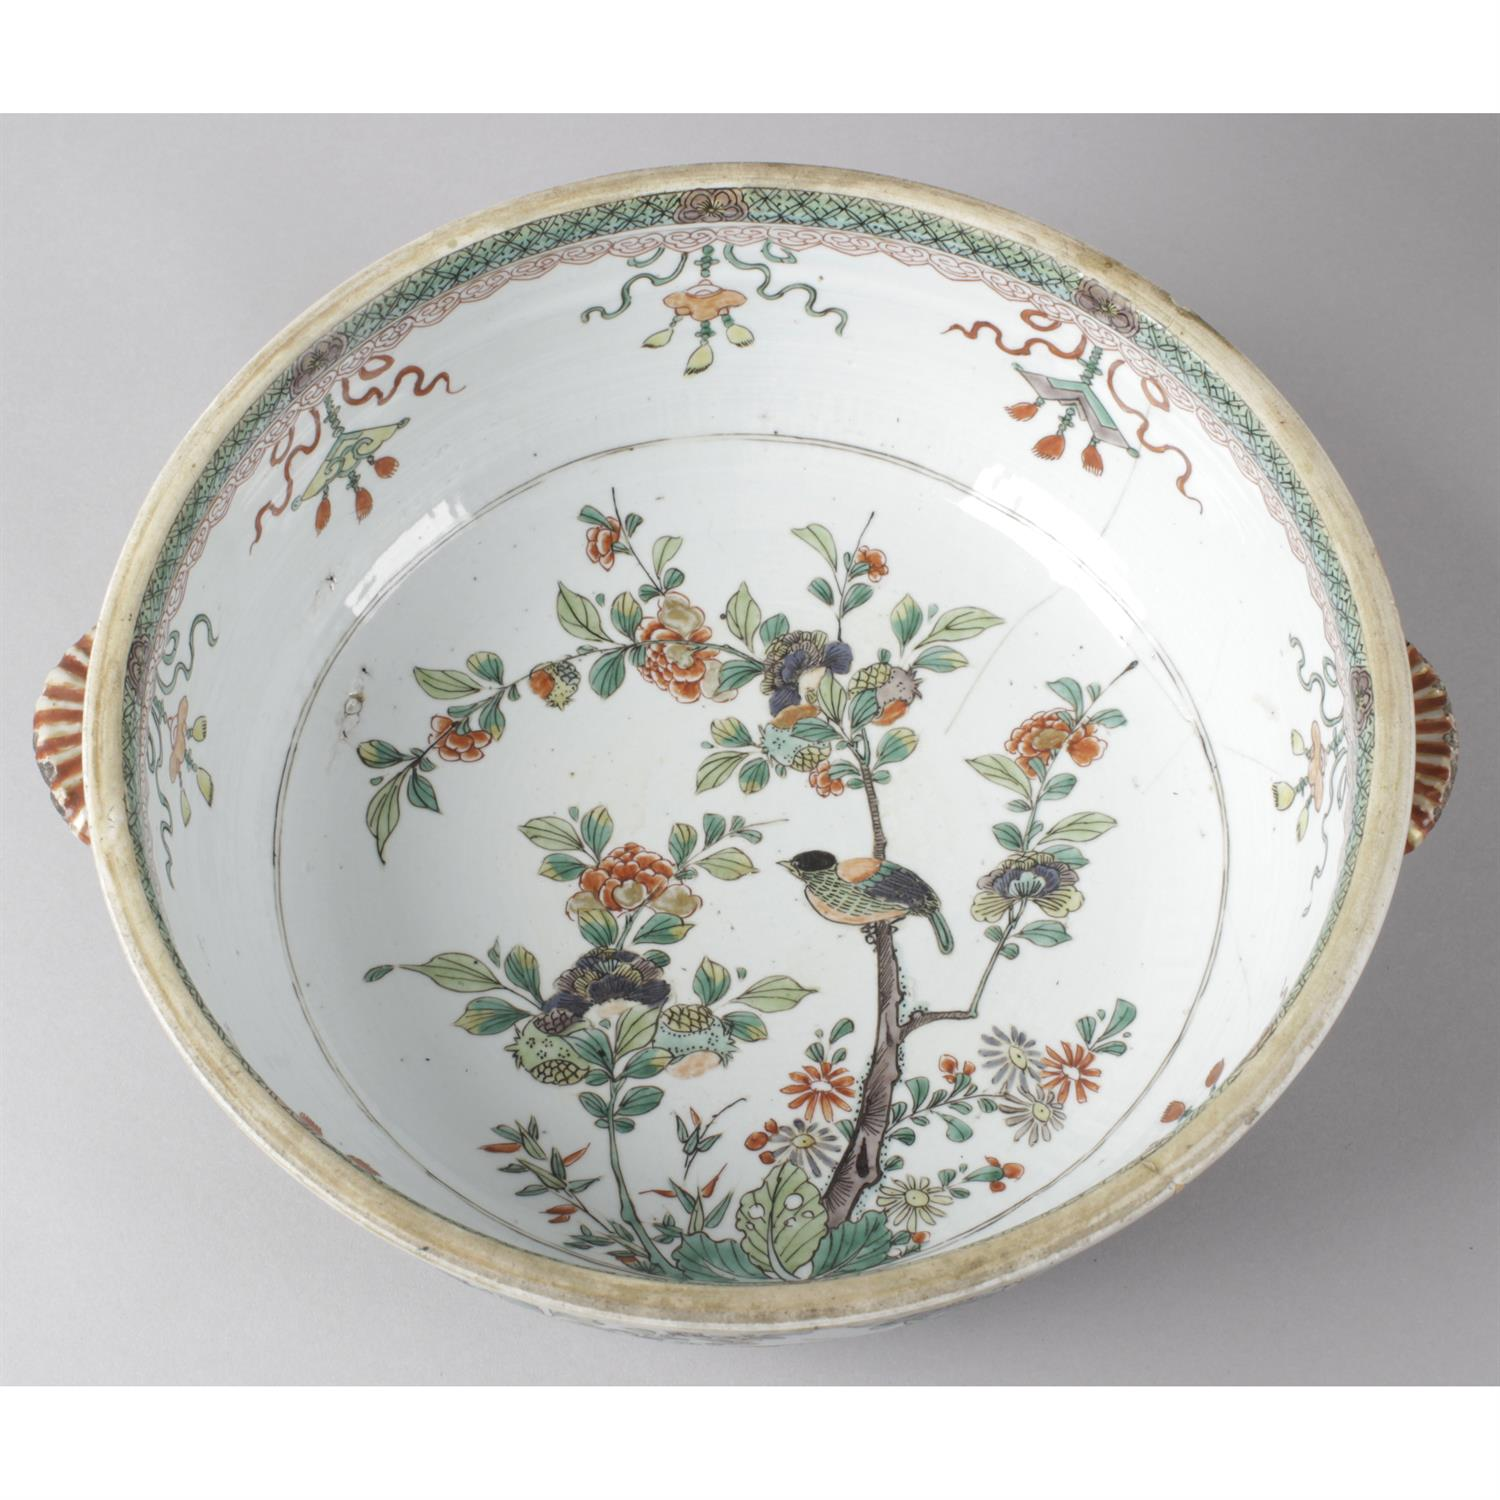 A twin handled oriental dish with cover together with an Imari bowl. - Image 2 of 3